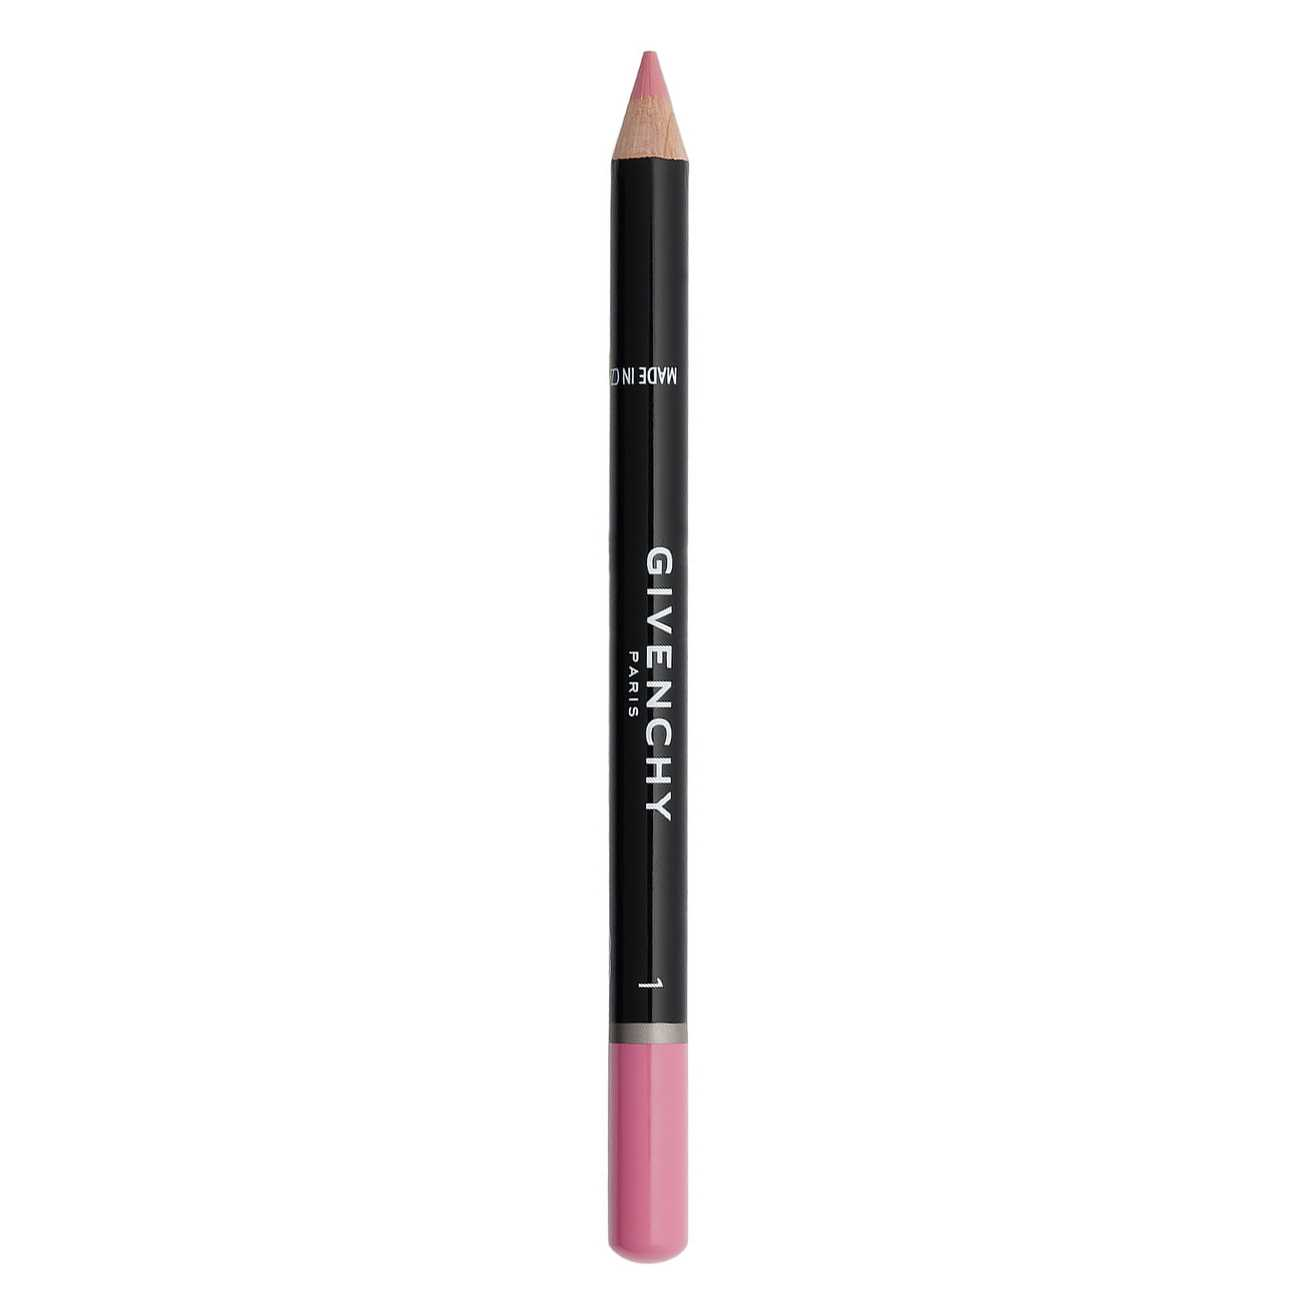 Lip Liner 2 G Candy 1 Givenchy imagine 2021 bestvalue.eu